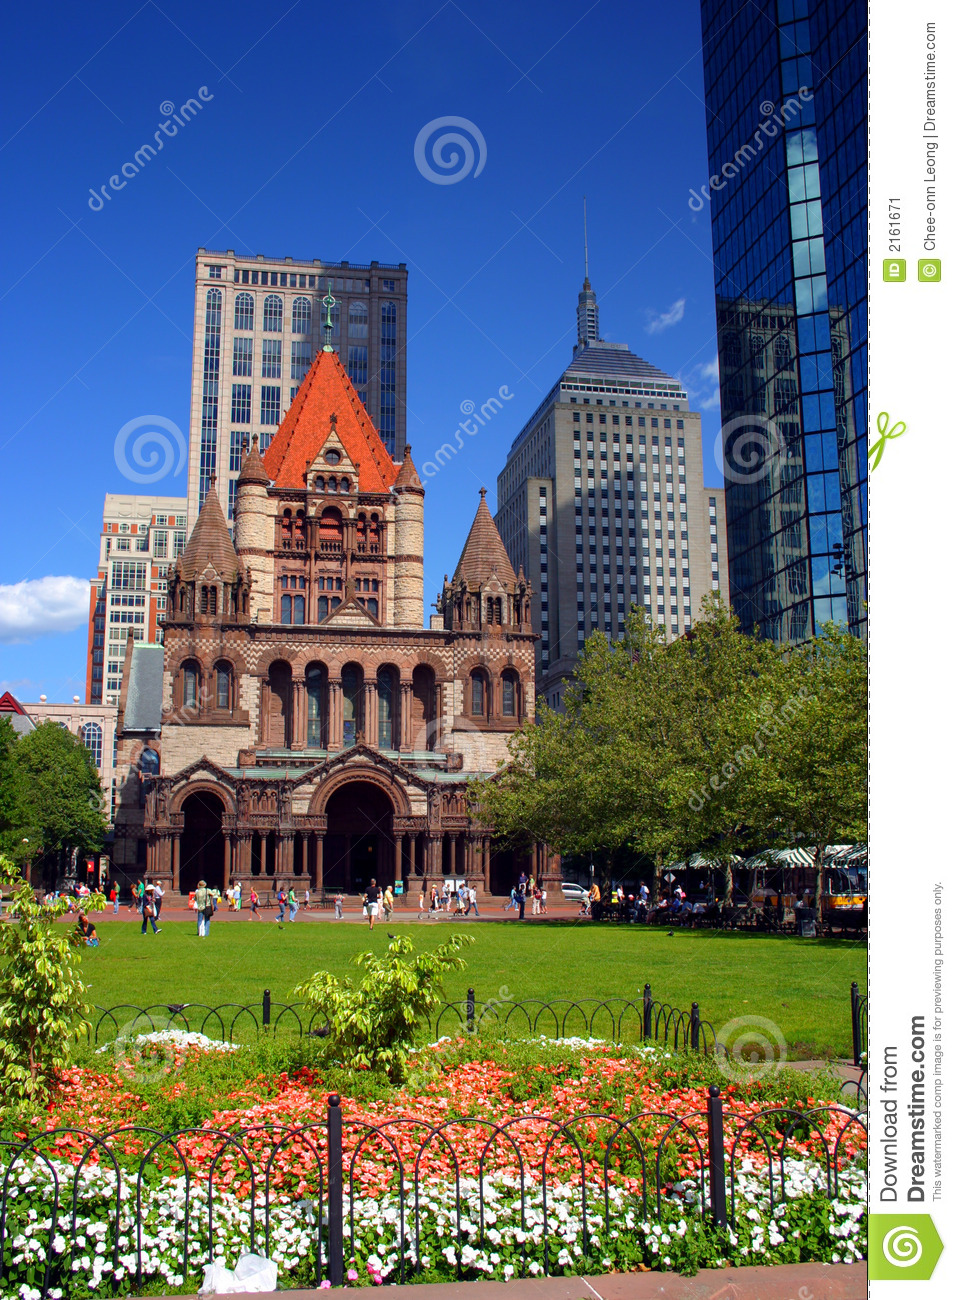 Grand dos de Copley, Boston